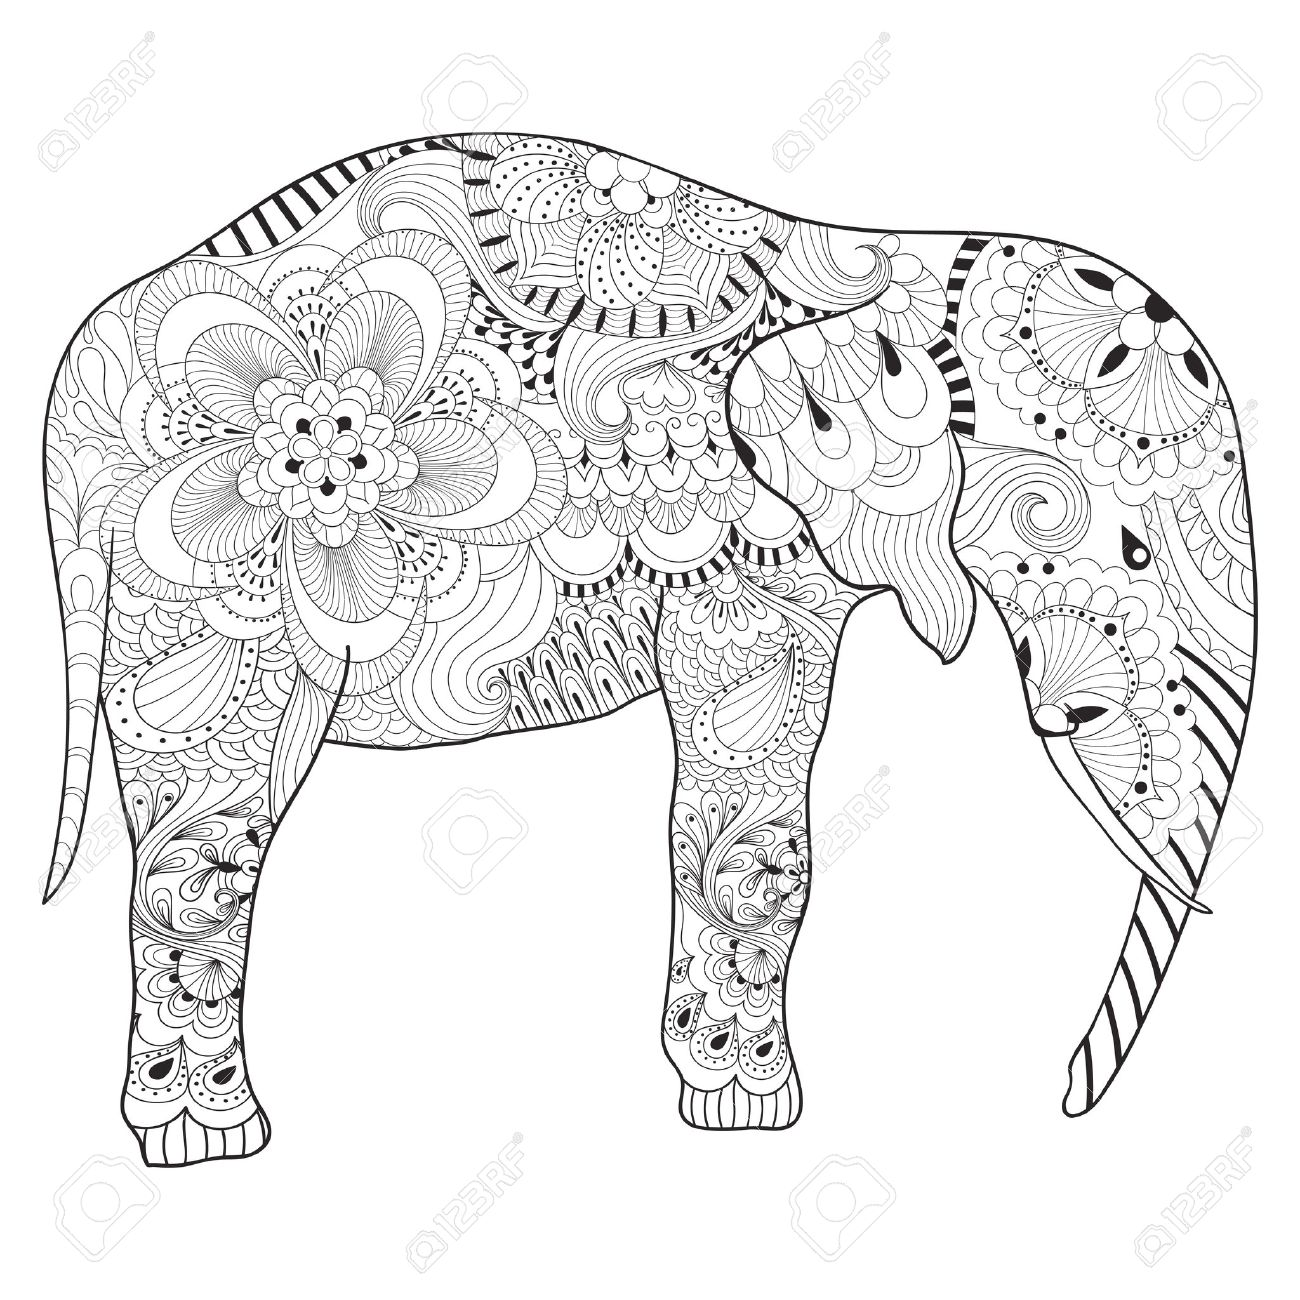 patterned elephant drawing at getdrawings com free for personal